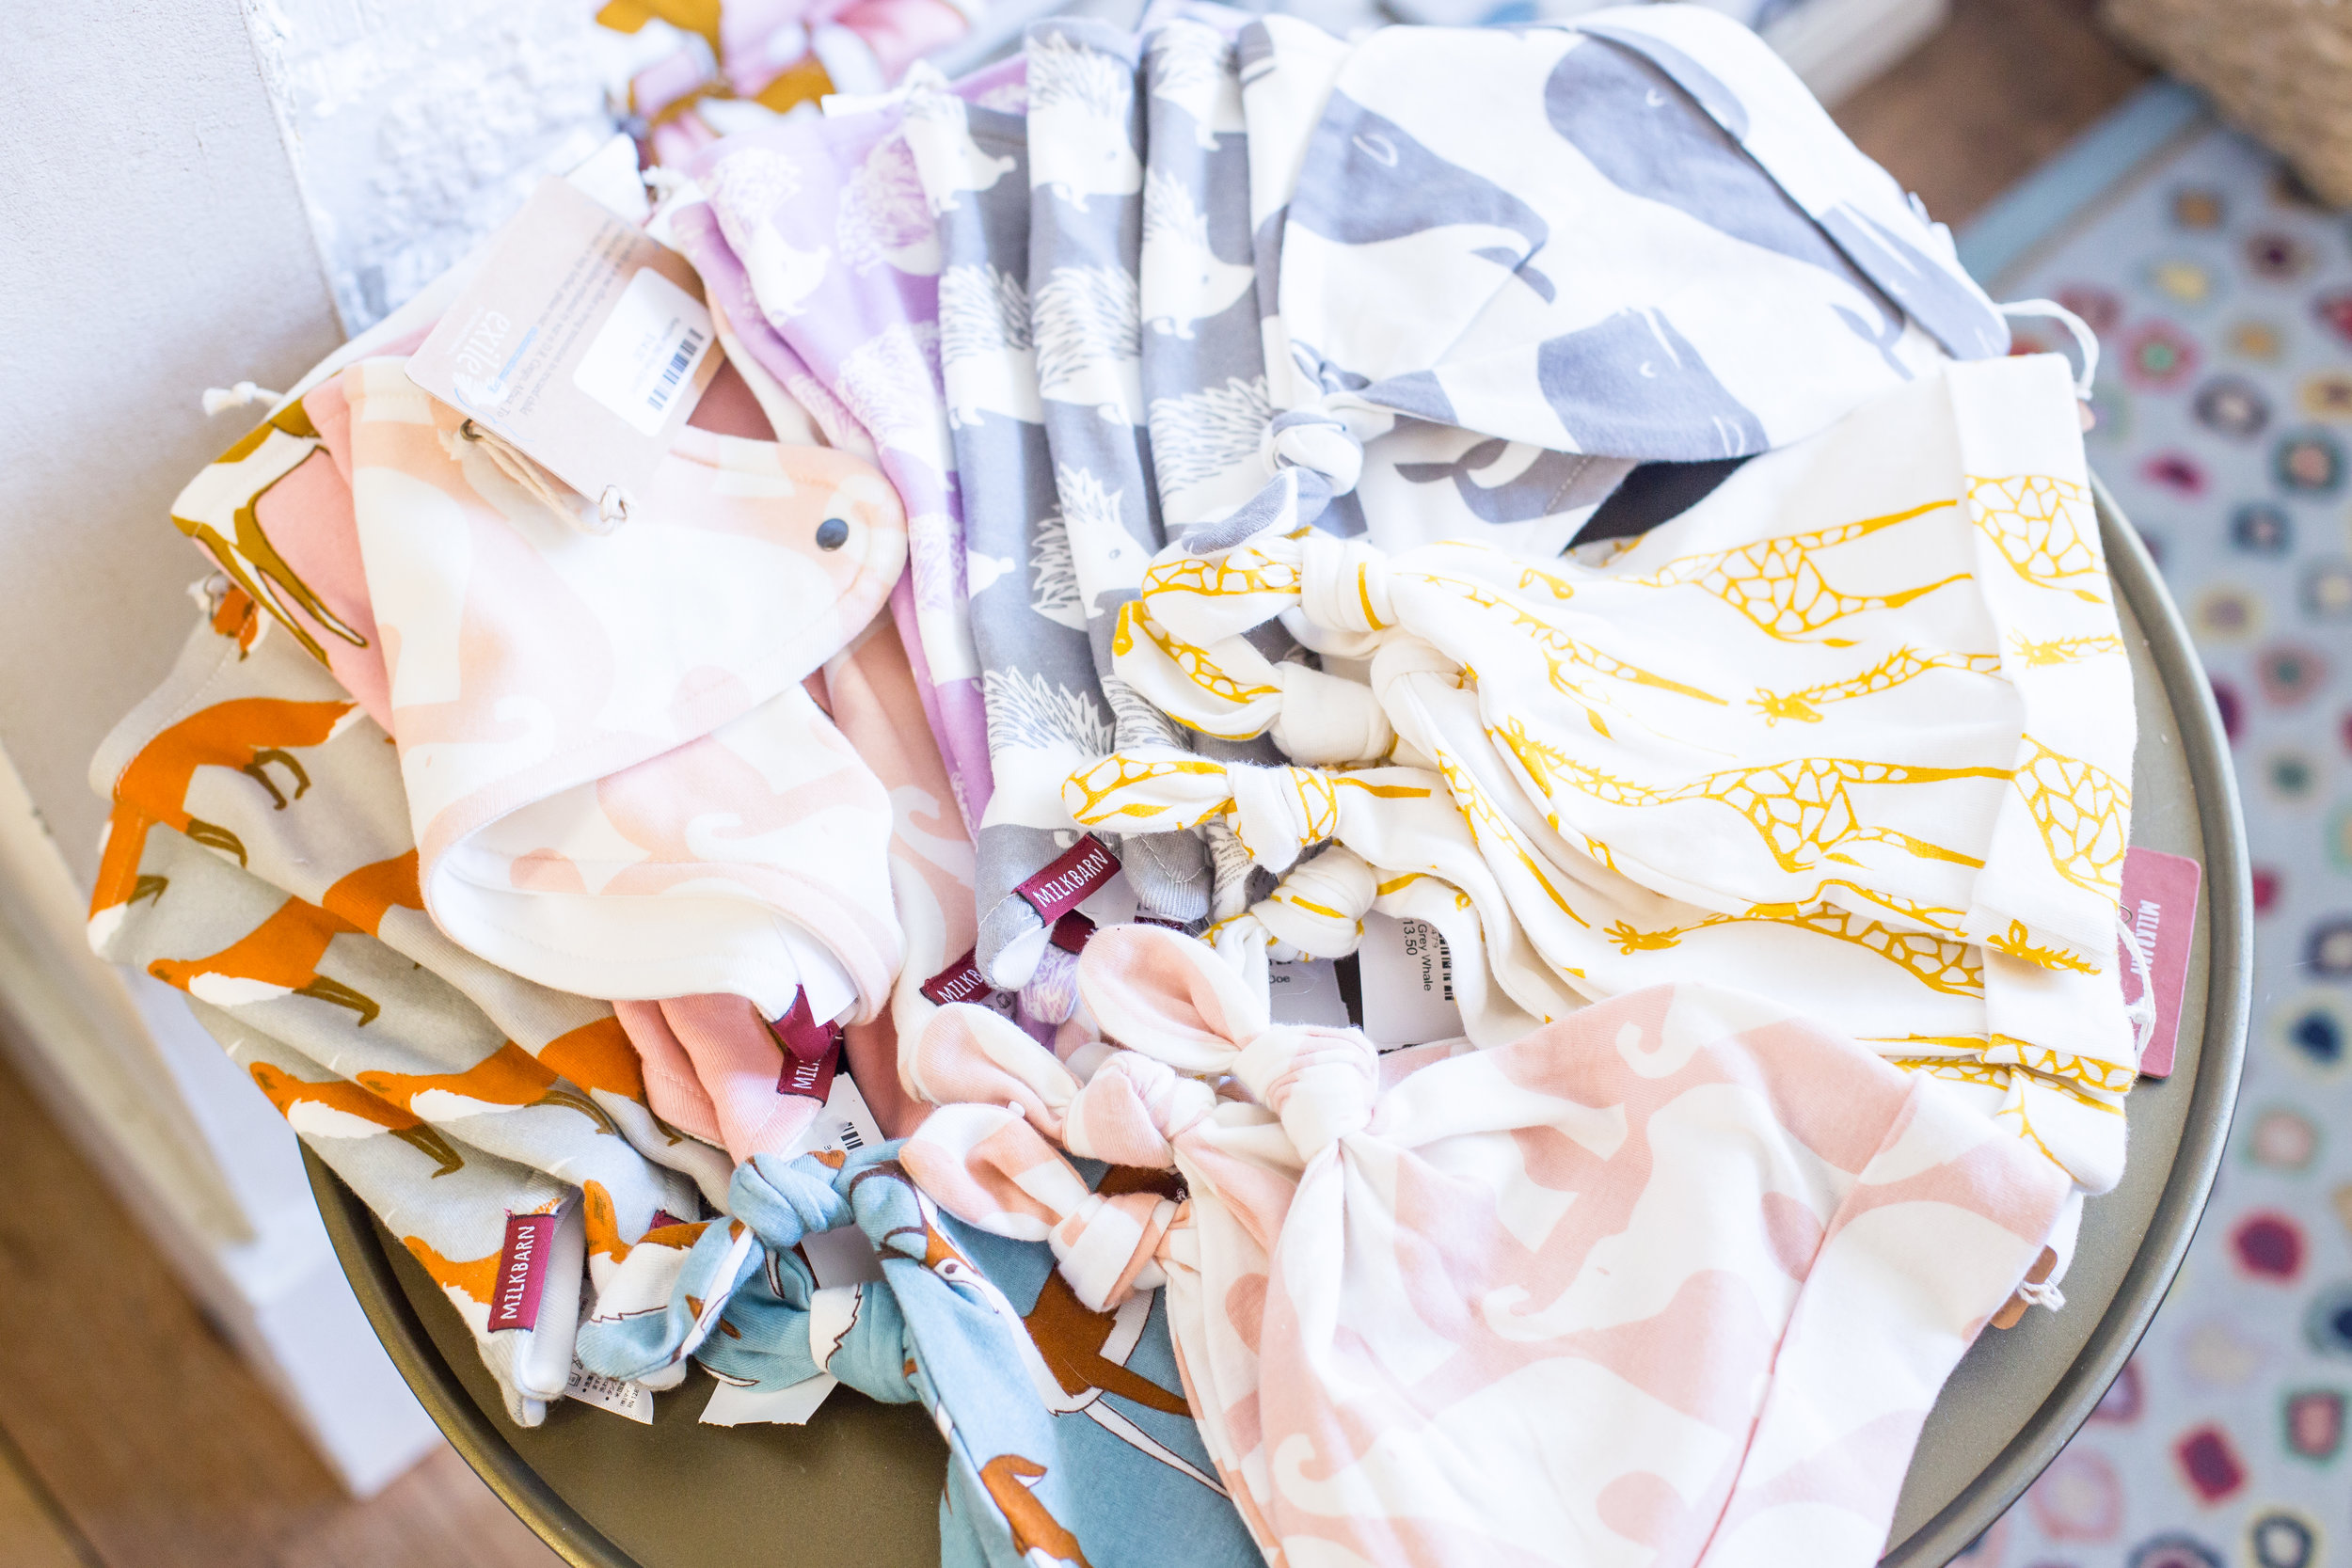 Baby gifts, bibs, colorful patterns